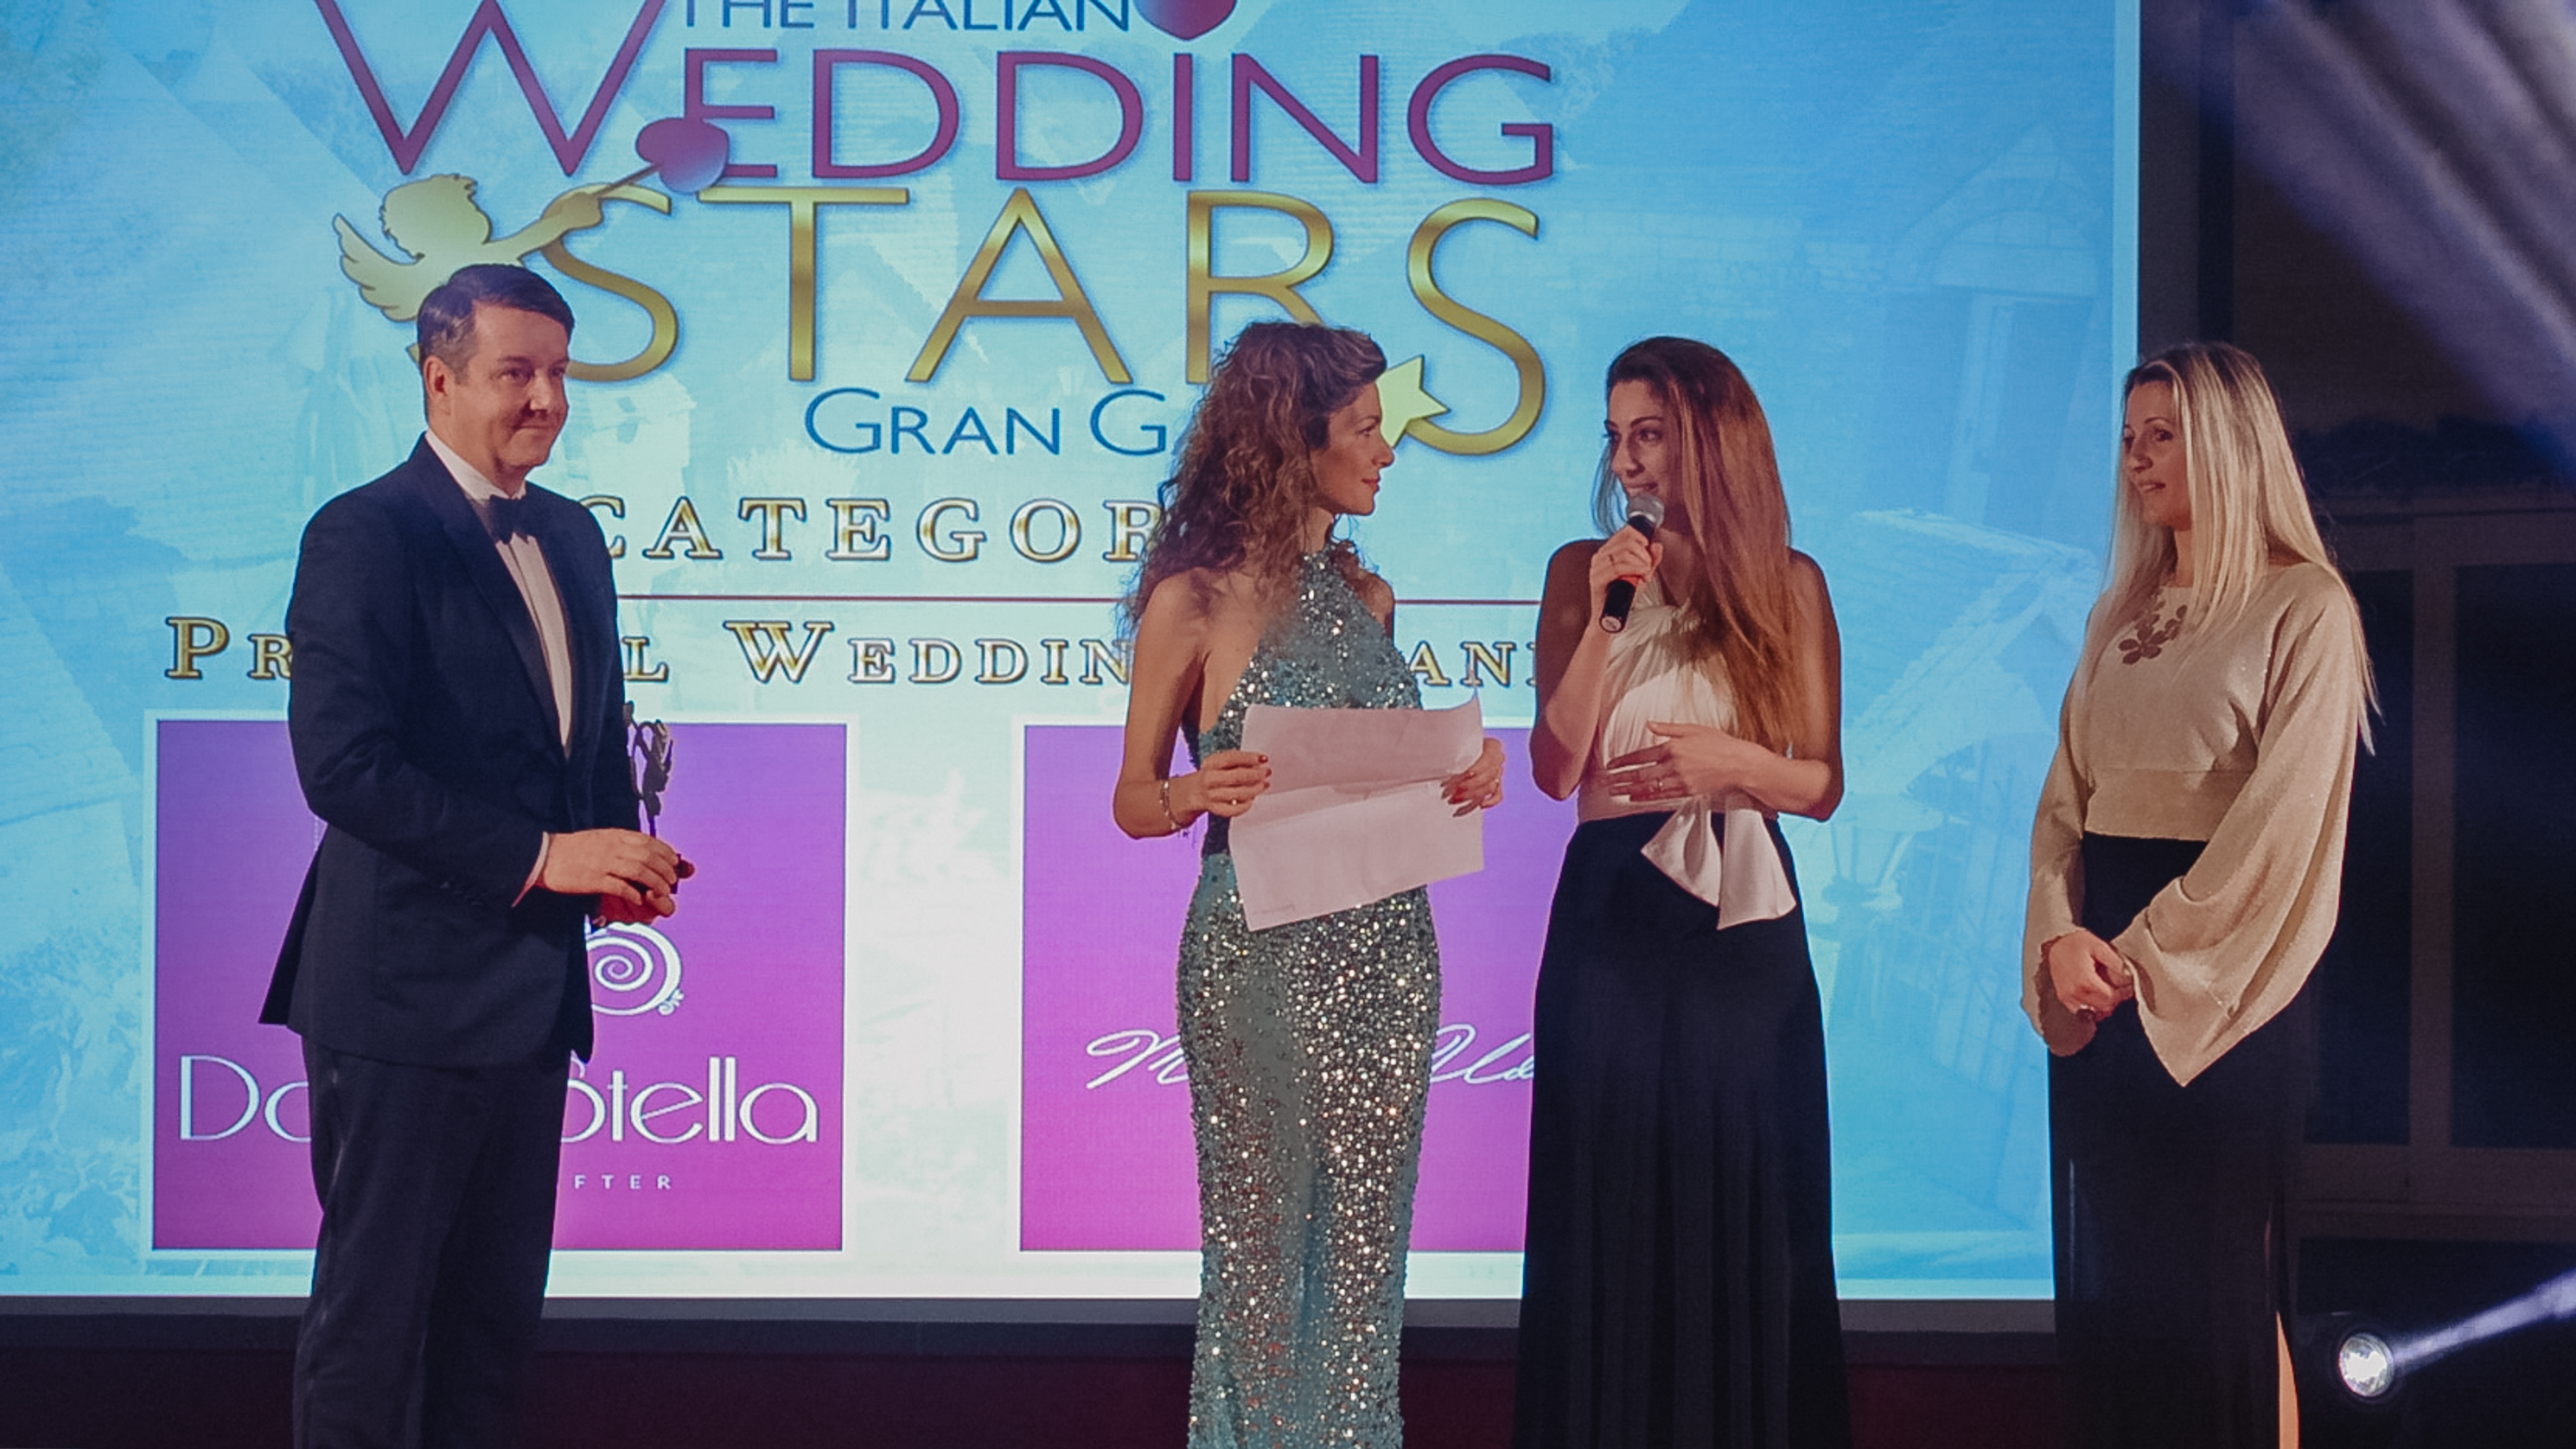 Perfect Wedding Magazine partners with The Italian Wedding Stars Gran Gala